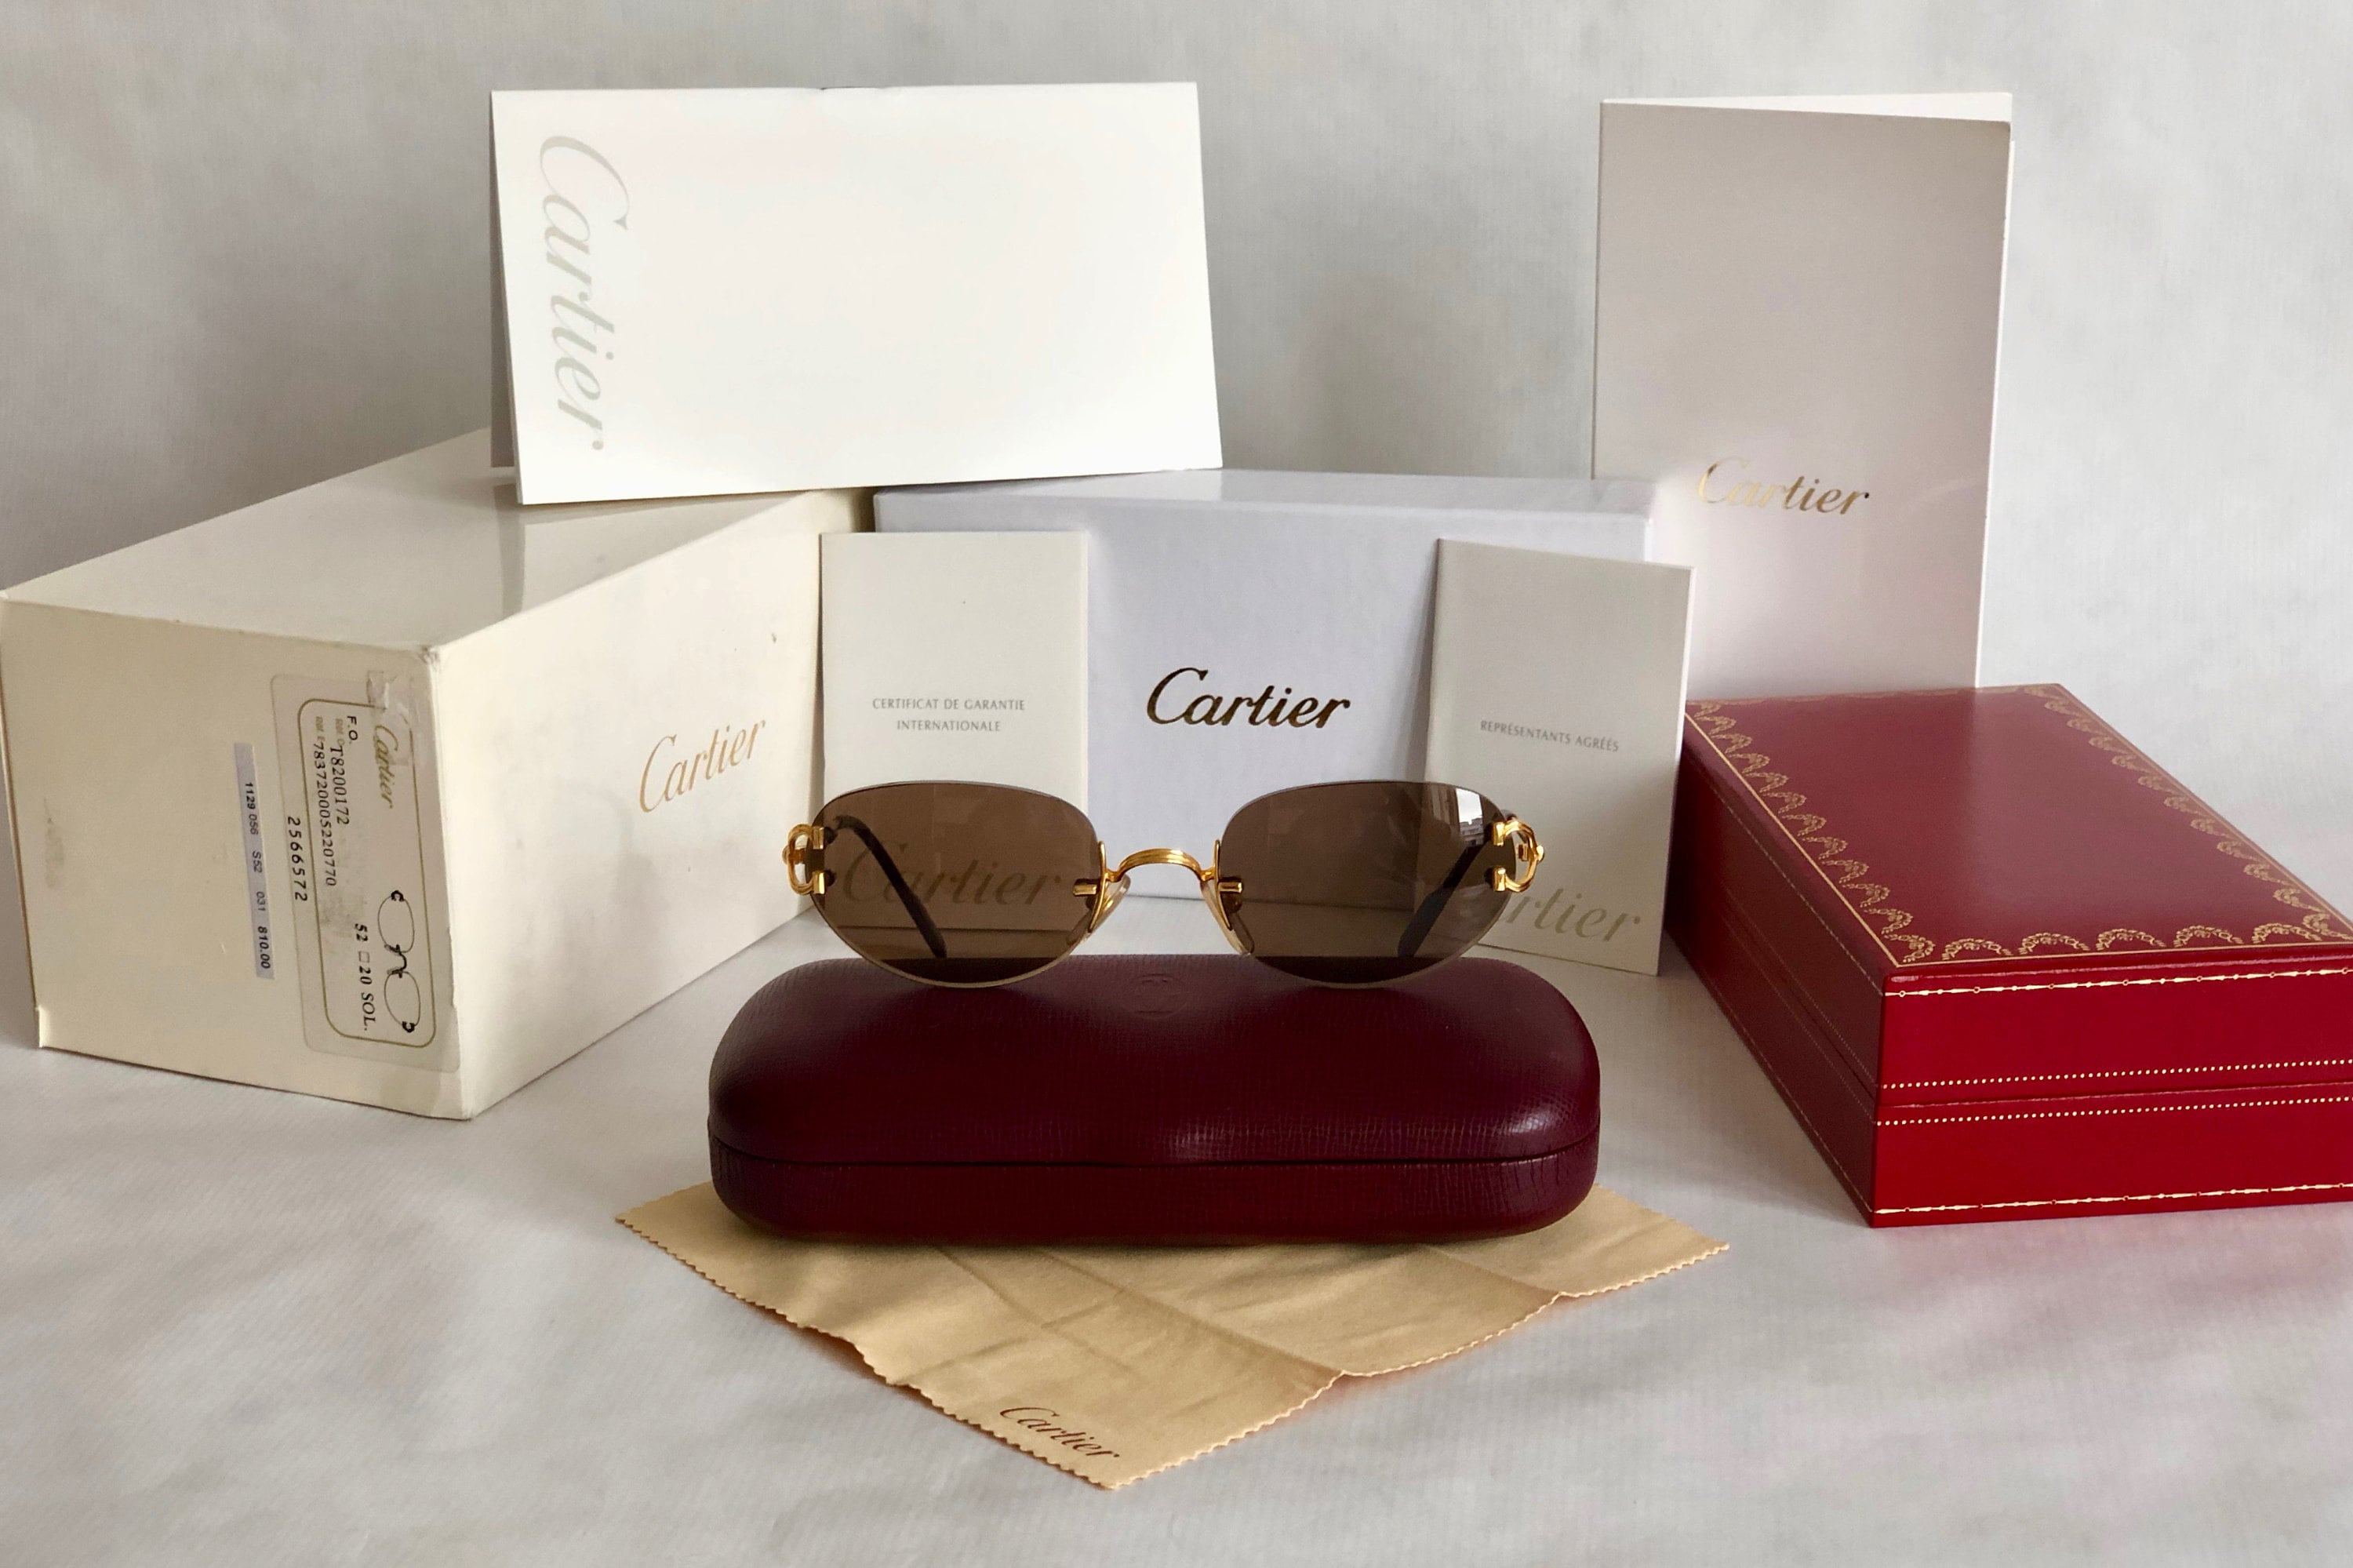 57d72dbe0f Cartier Portofino 22K Gold Vintage Sunglasses – Full Set with 2 Cases – New  Old Stock. gallery photo gallery photo gallery photo gallery photo gallery  photo ...